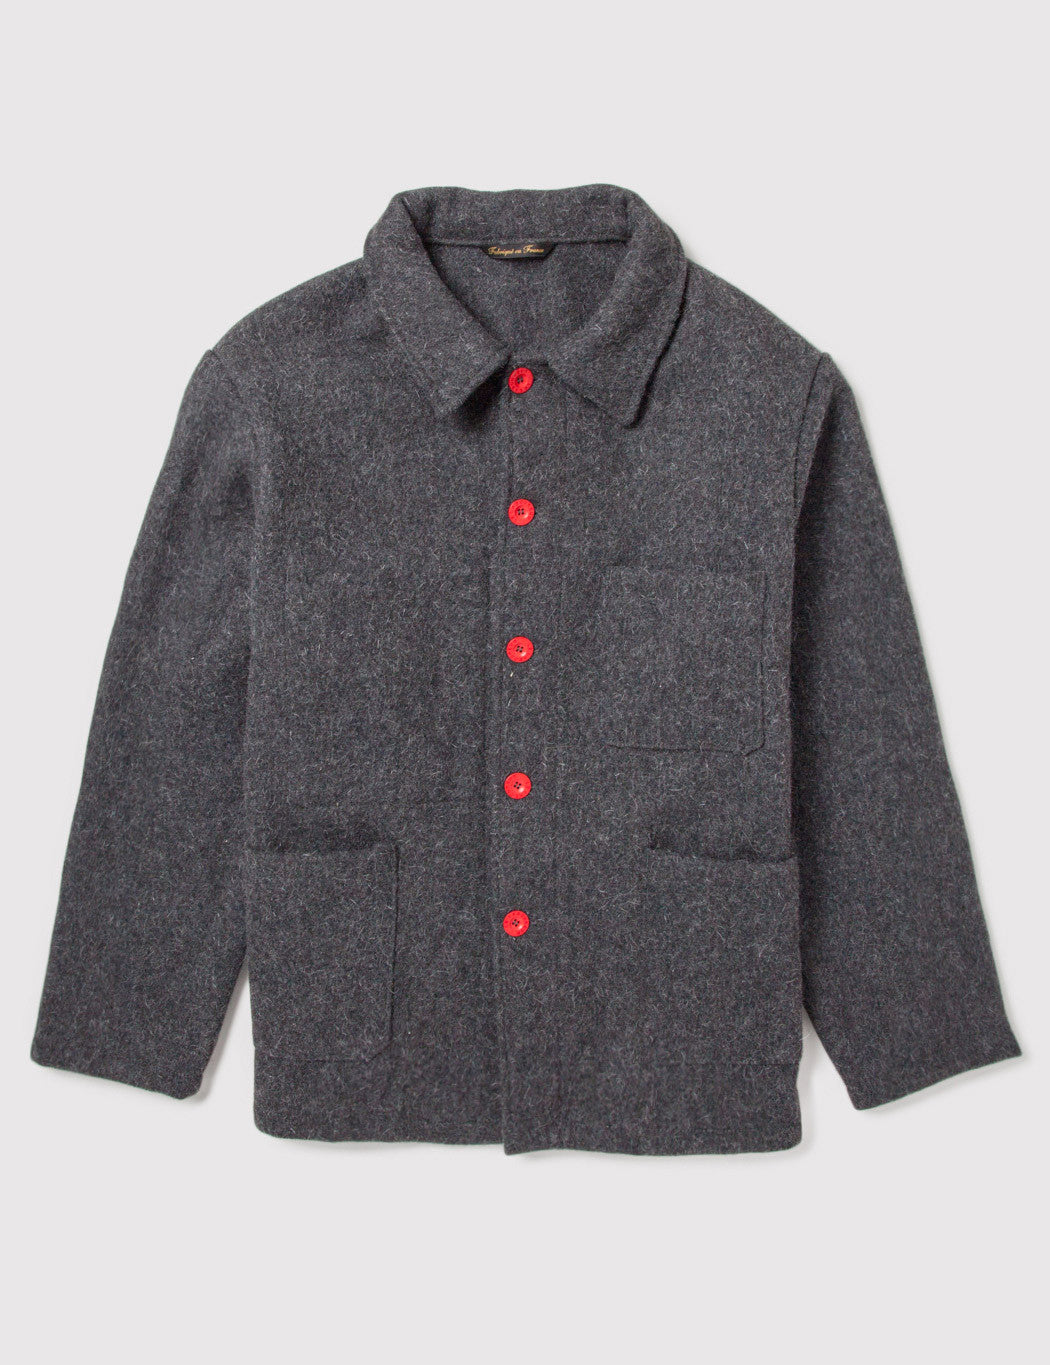 Le Laboureur Wool Work Jacket - Grey